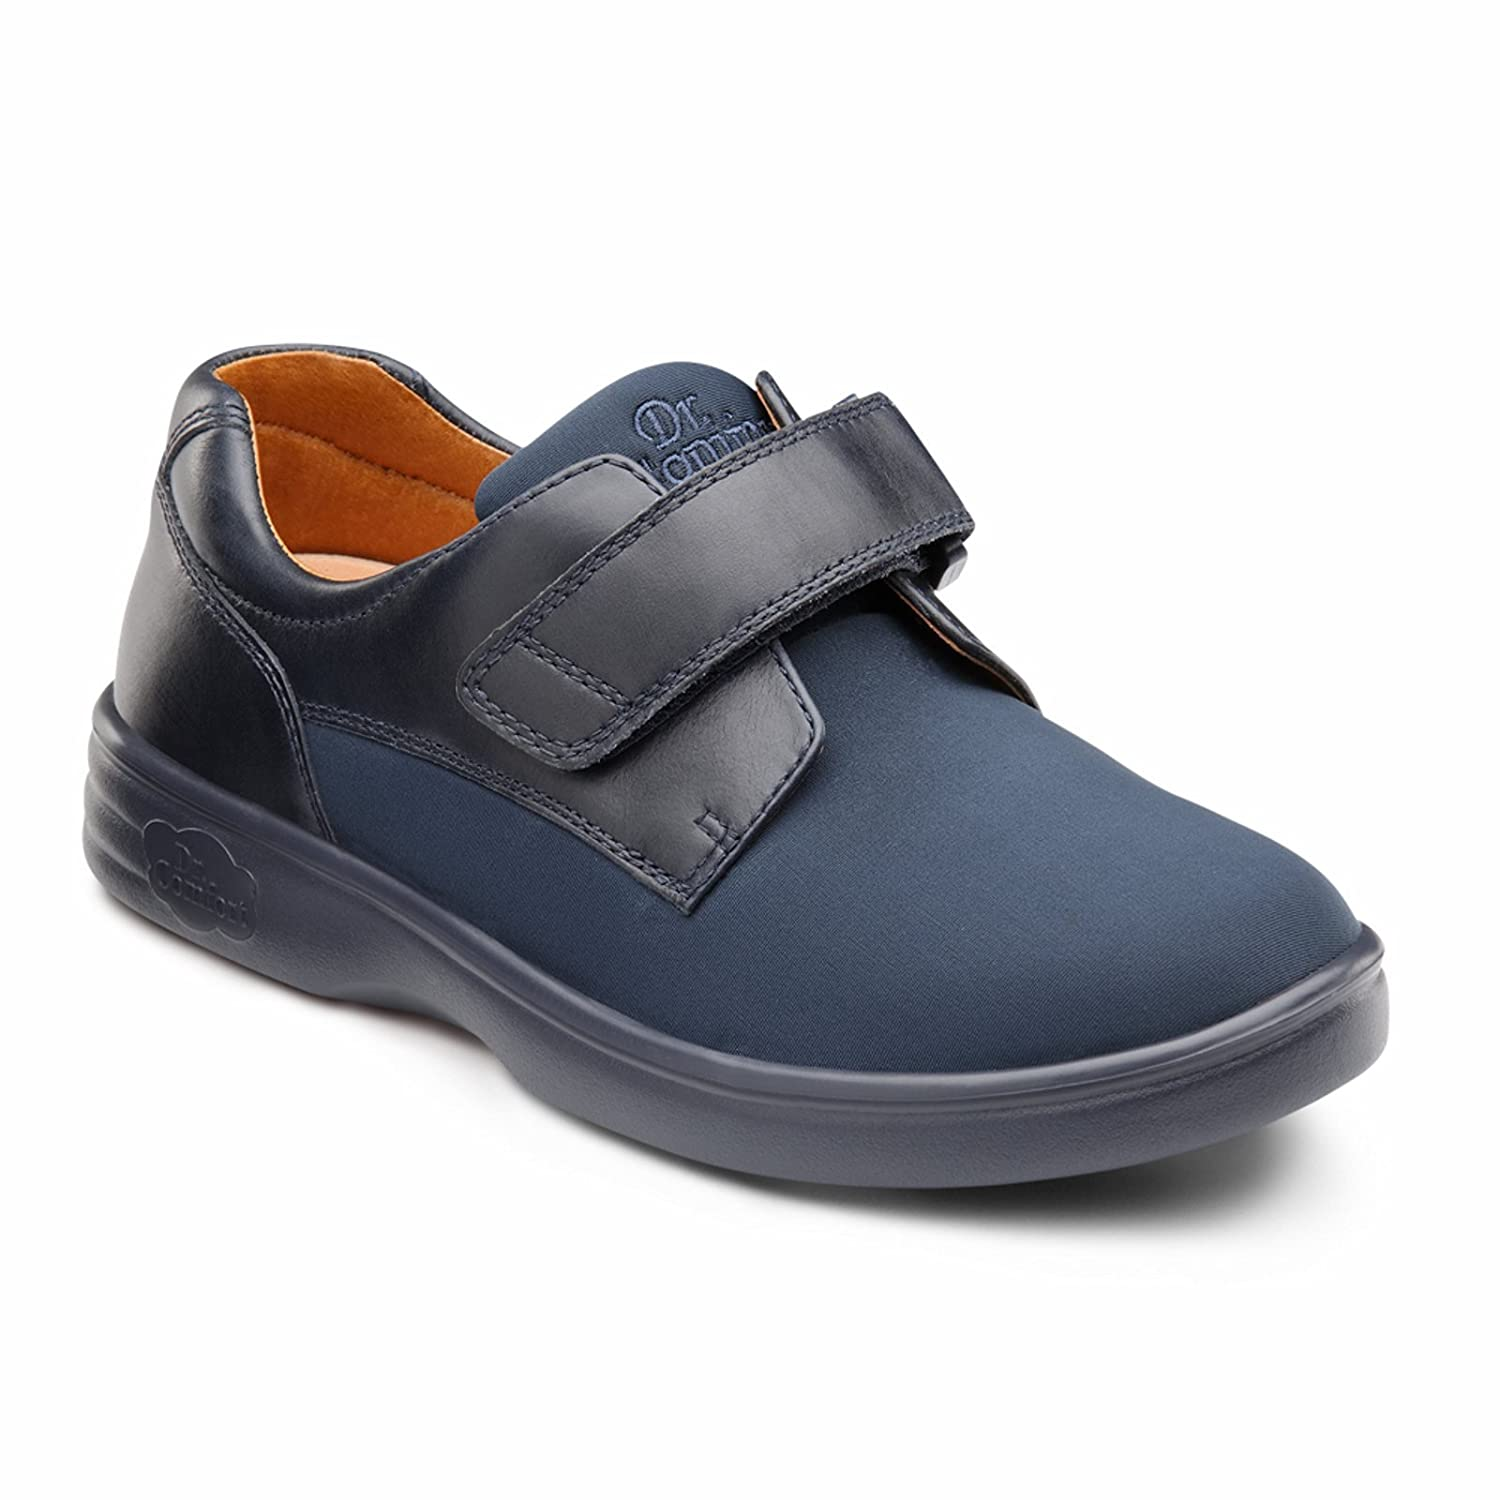 Dr. Comfort Annie Womens Casual Shoe B00IO80DFC 11.0 Wide (C-D) Blue Velcro US Woman|Blue